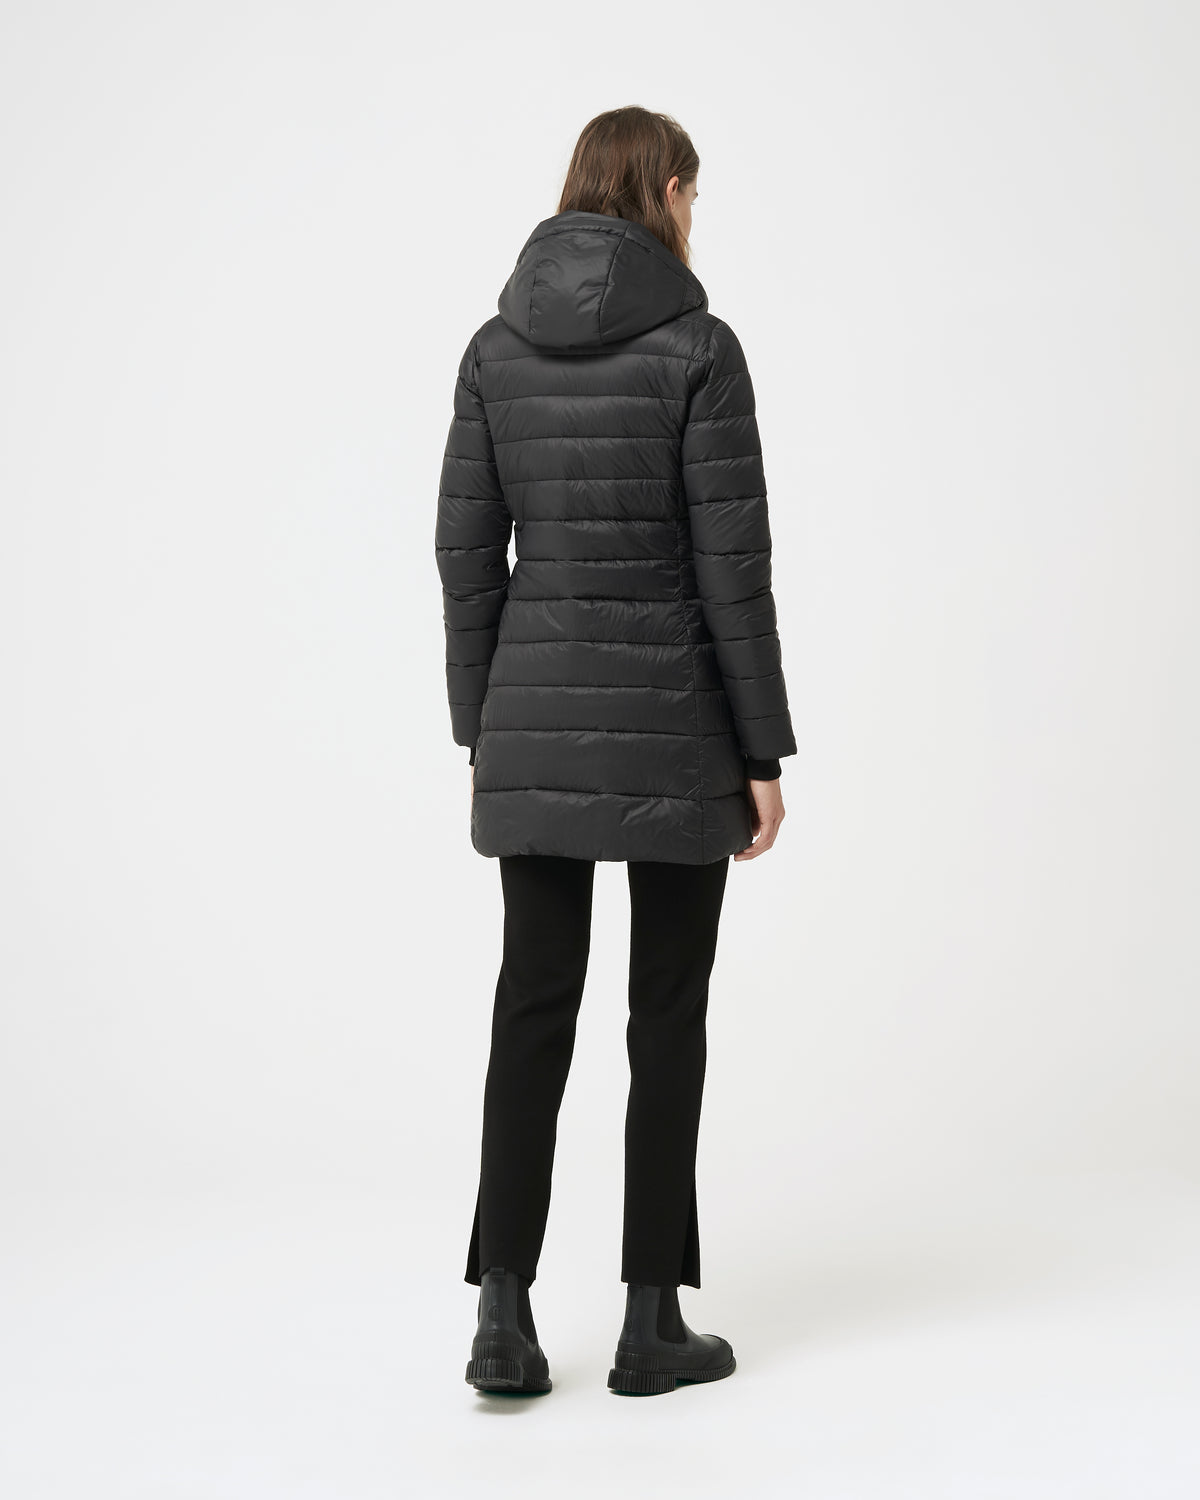 Quartz Co. - Canadian Made Winter Jackets | Lausanne | Women Down Lightweight jacket | Back